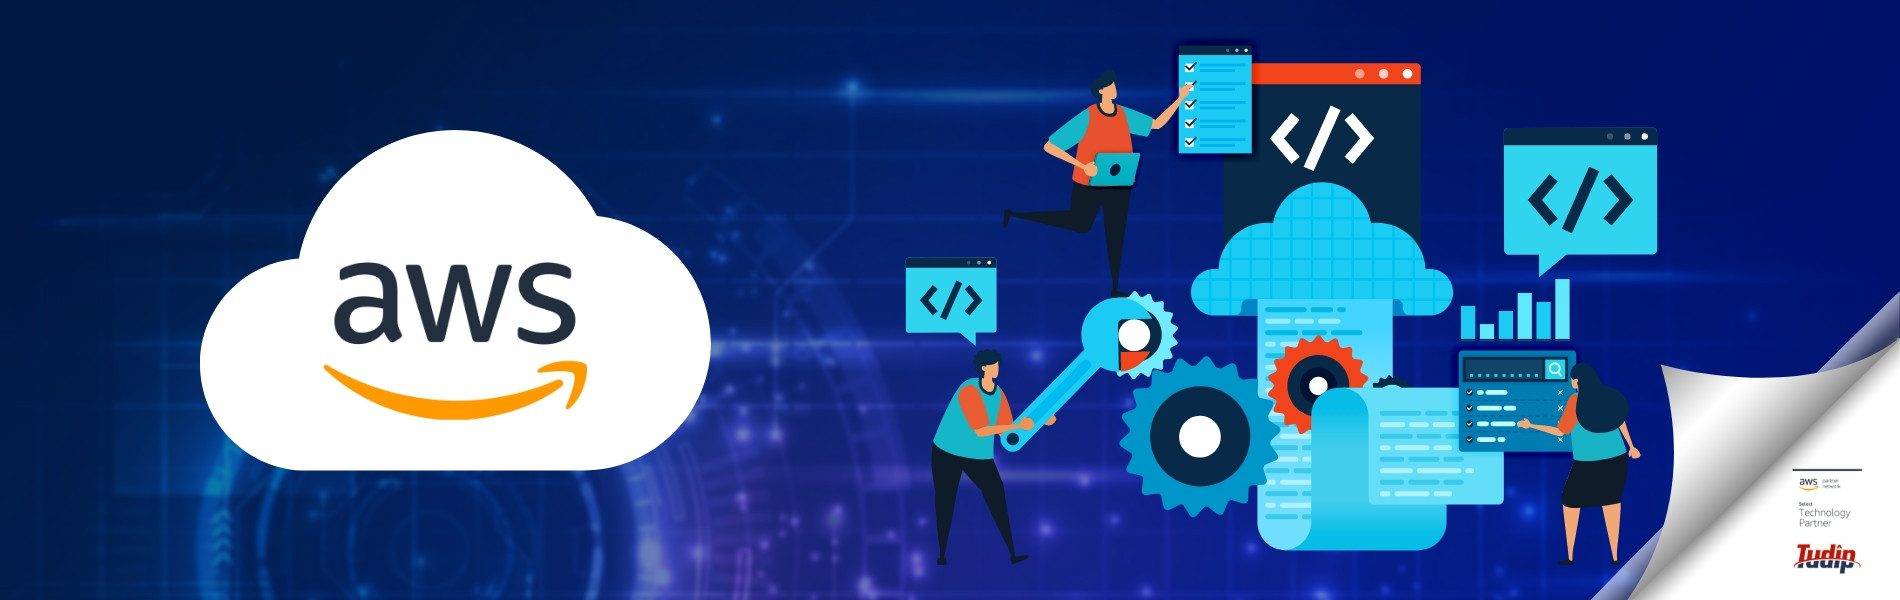 How to implement AWS IoT core communication in .NET Framework application using MQTT?